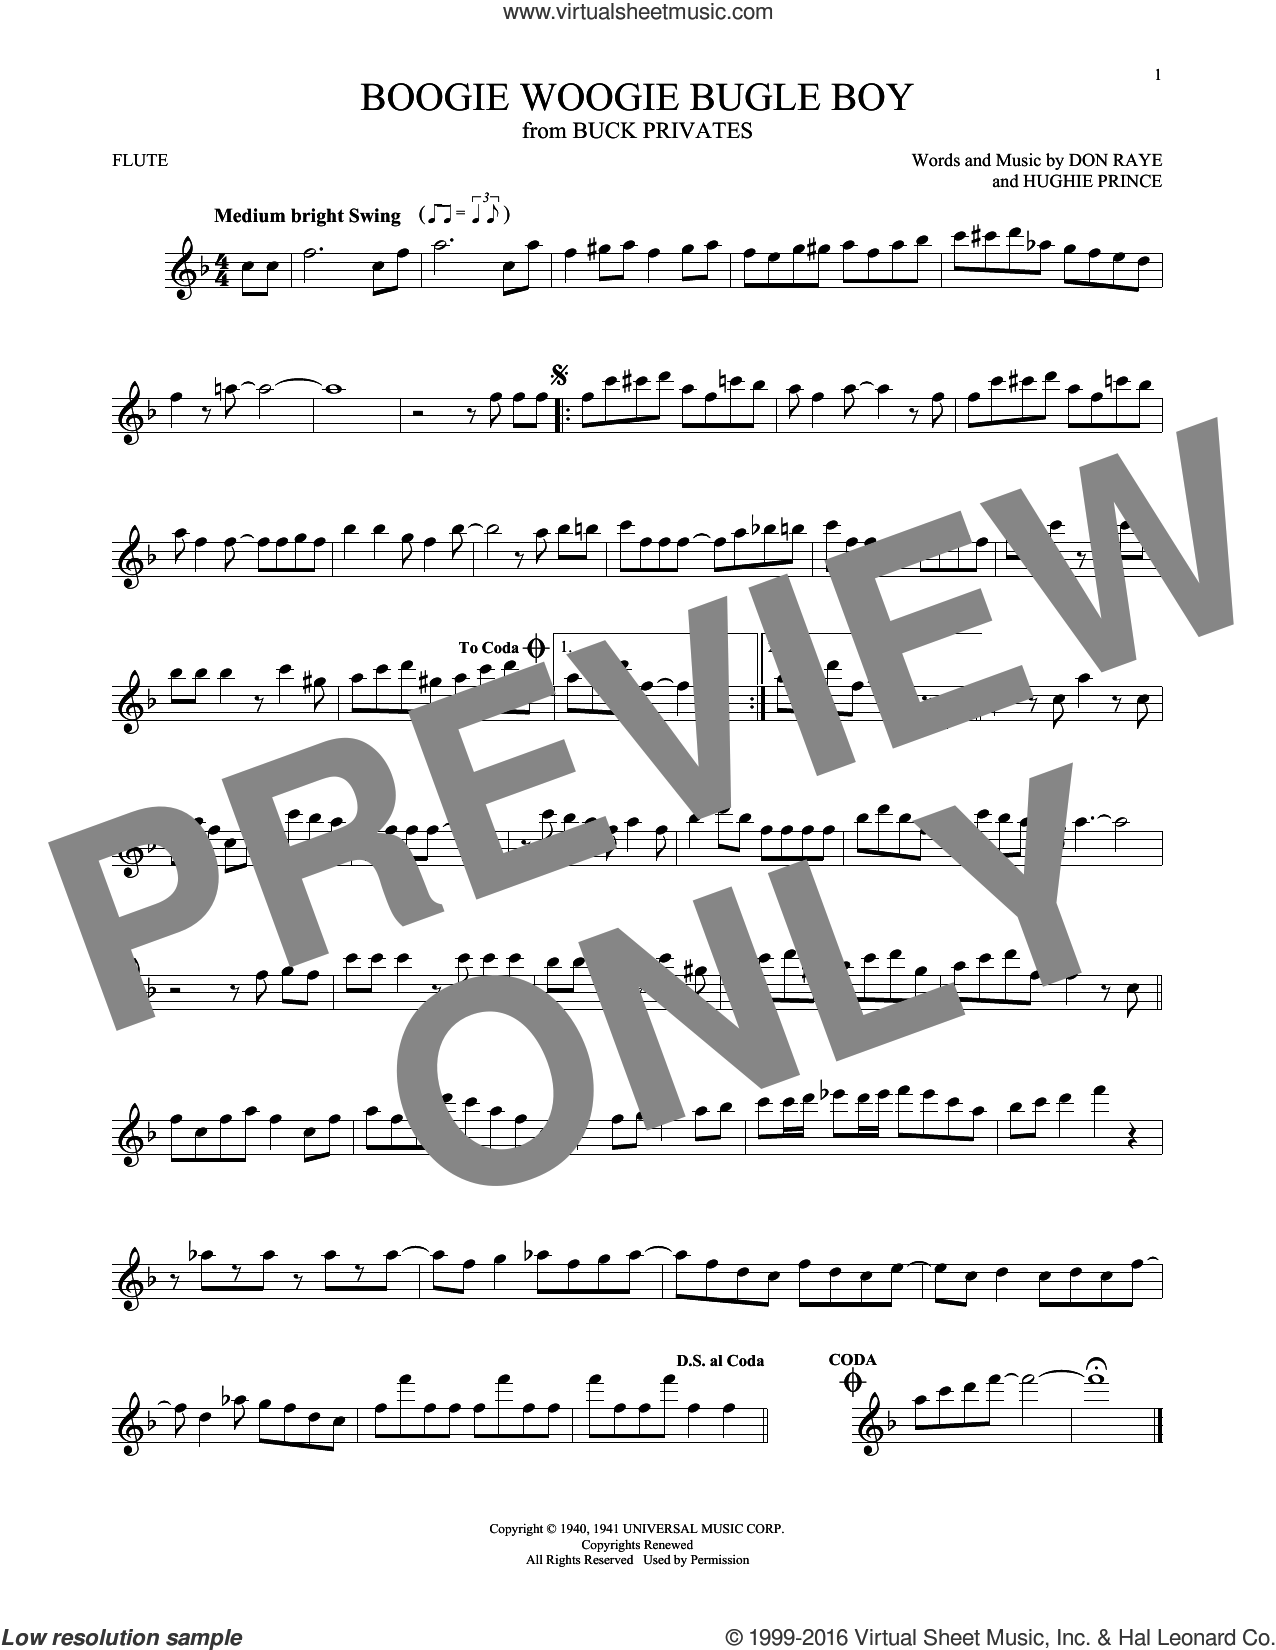 Boogie Woogie Bugle Boy sheet music for flute solo by Andrews Sisters, Bette Midler, Don Raye and Hughie Prince, intermediate skill level